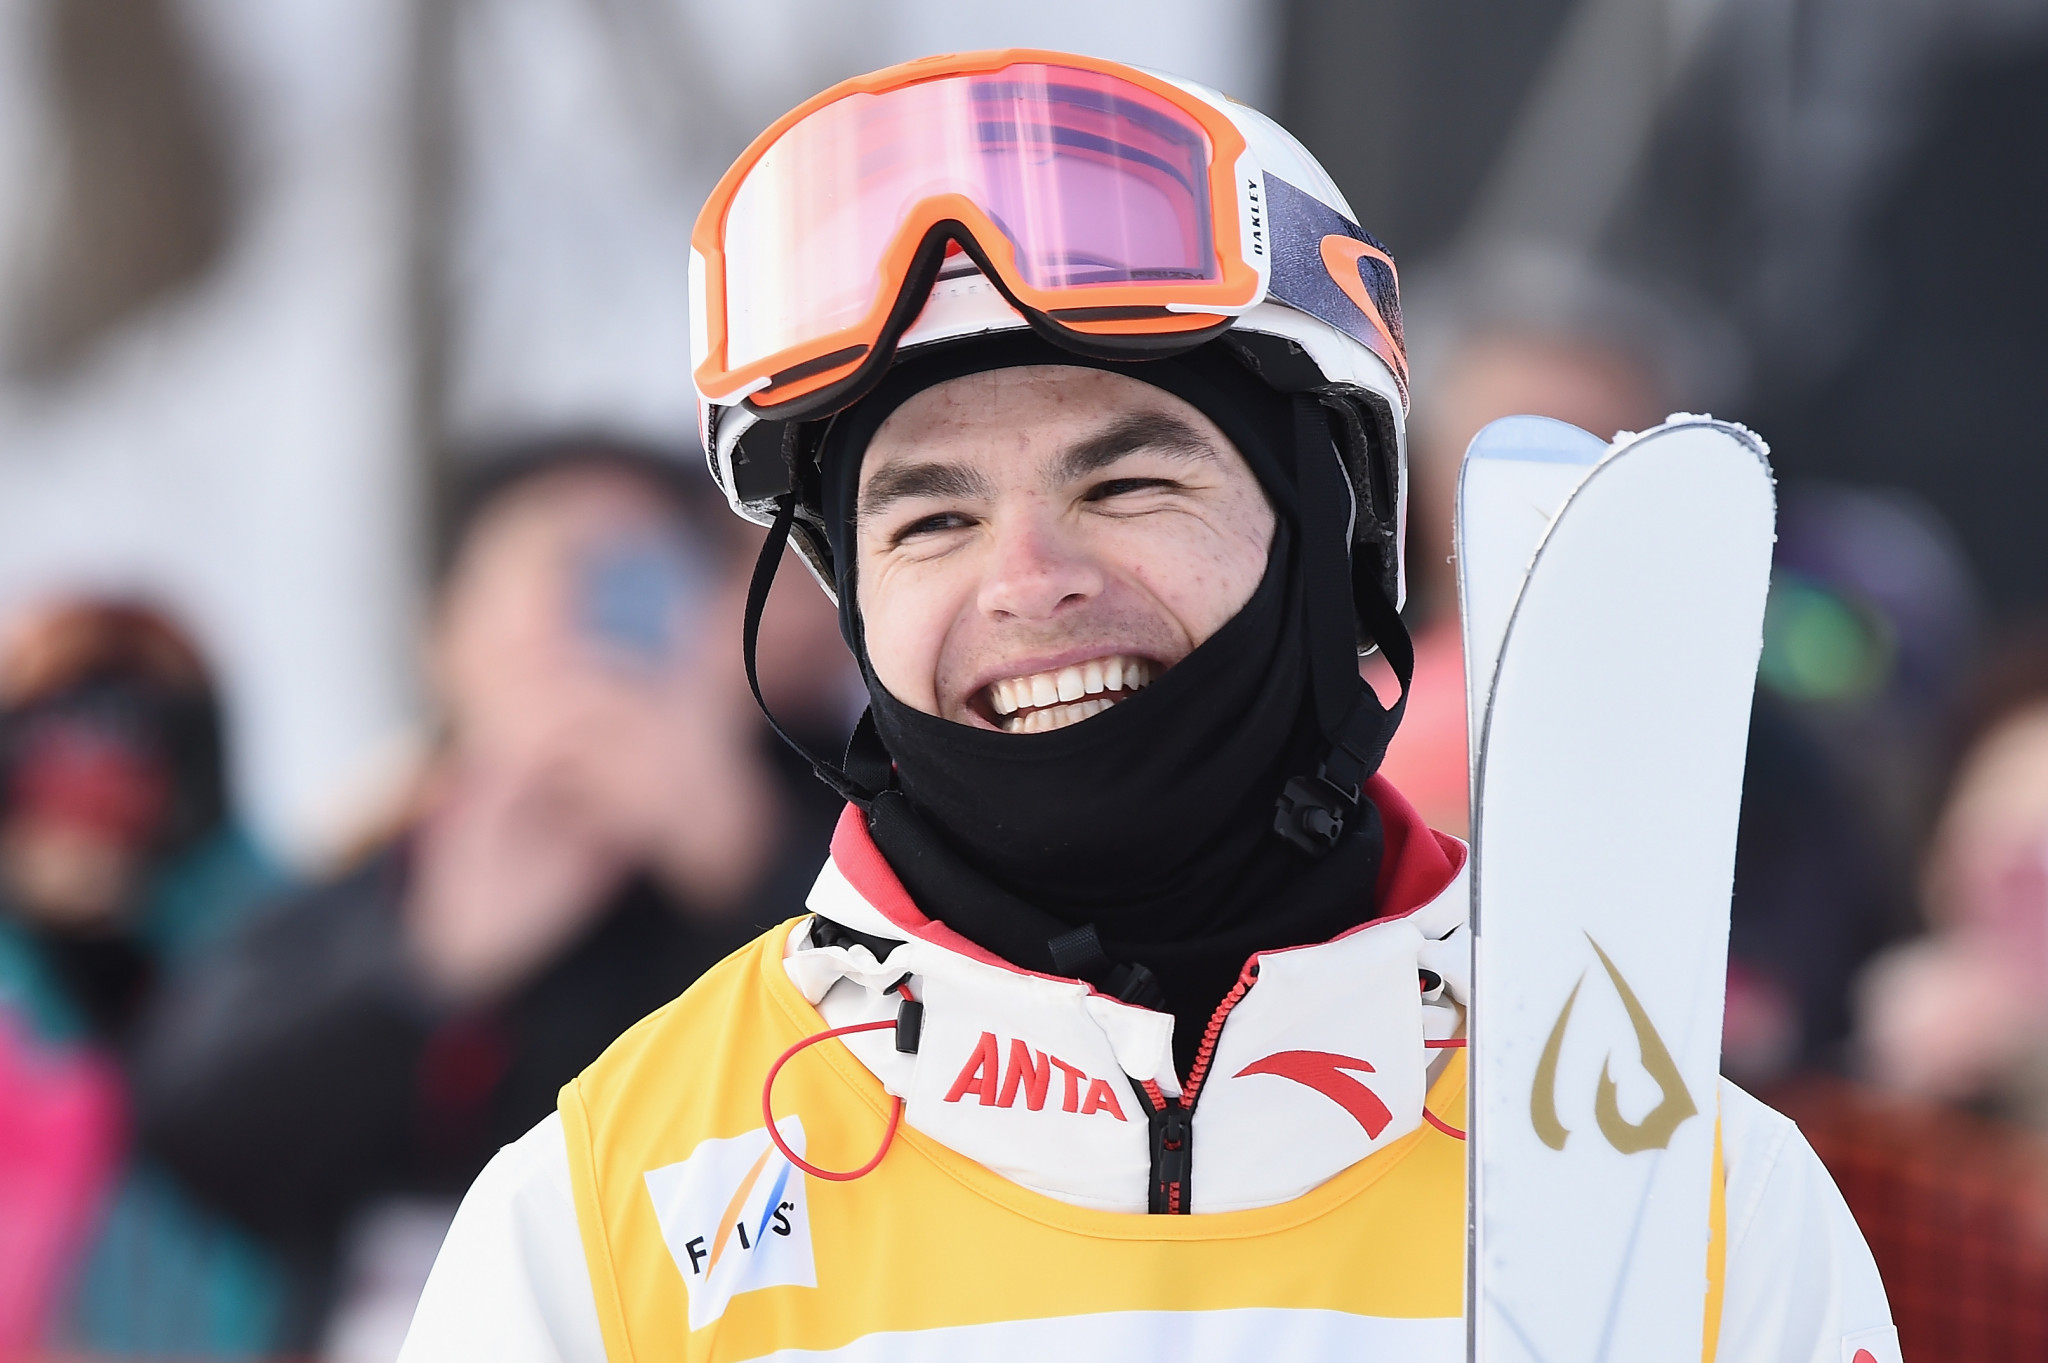 Laffont and Kingsbury win dual moguls titles at FIS Freestyle Ski World Cup